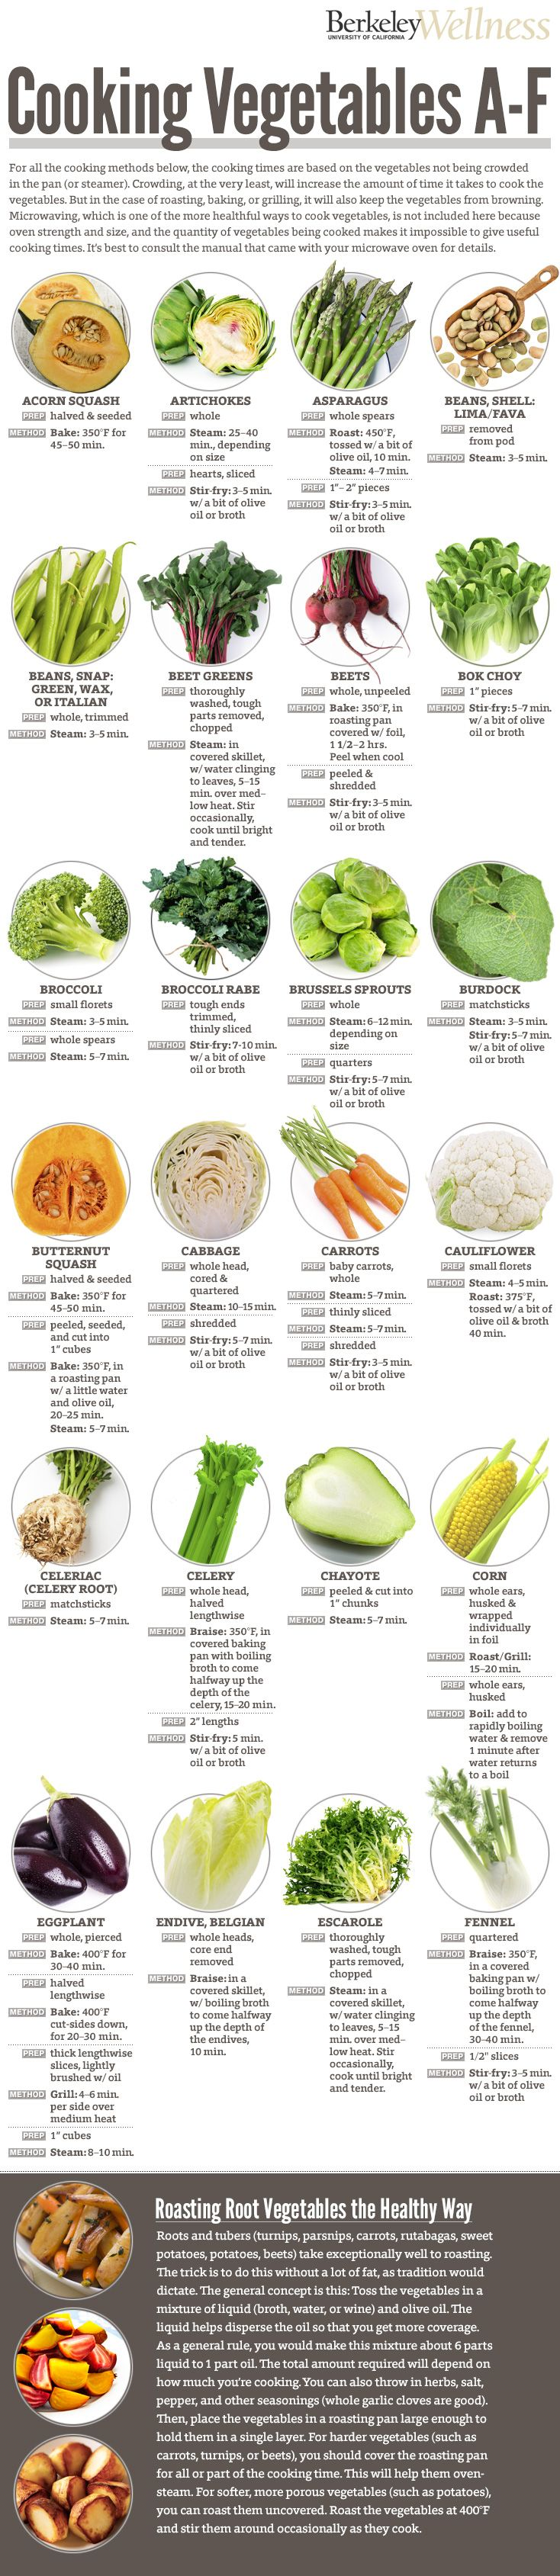 PART I: How to Cook Vegetables the healthy way (from Acorn squash to Fennel)